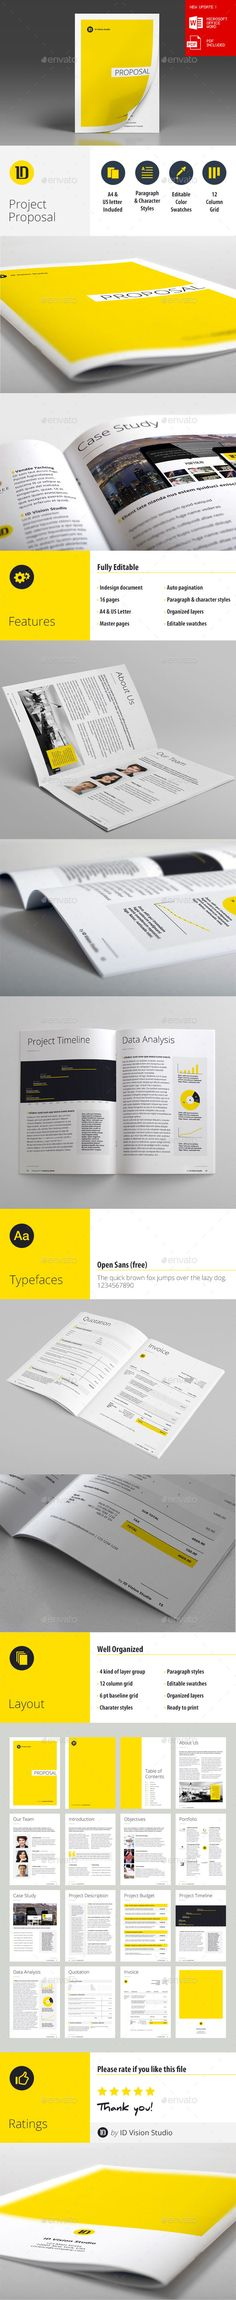 Creative Project Proposal Template #design Download http - microsoft word proposal template free download